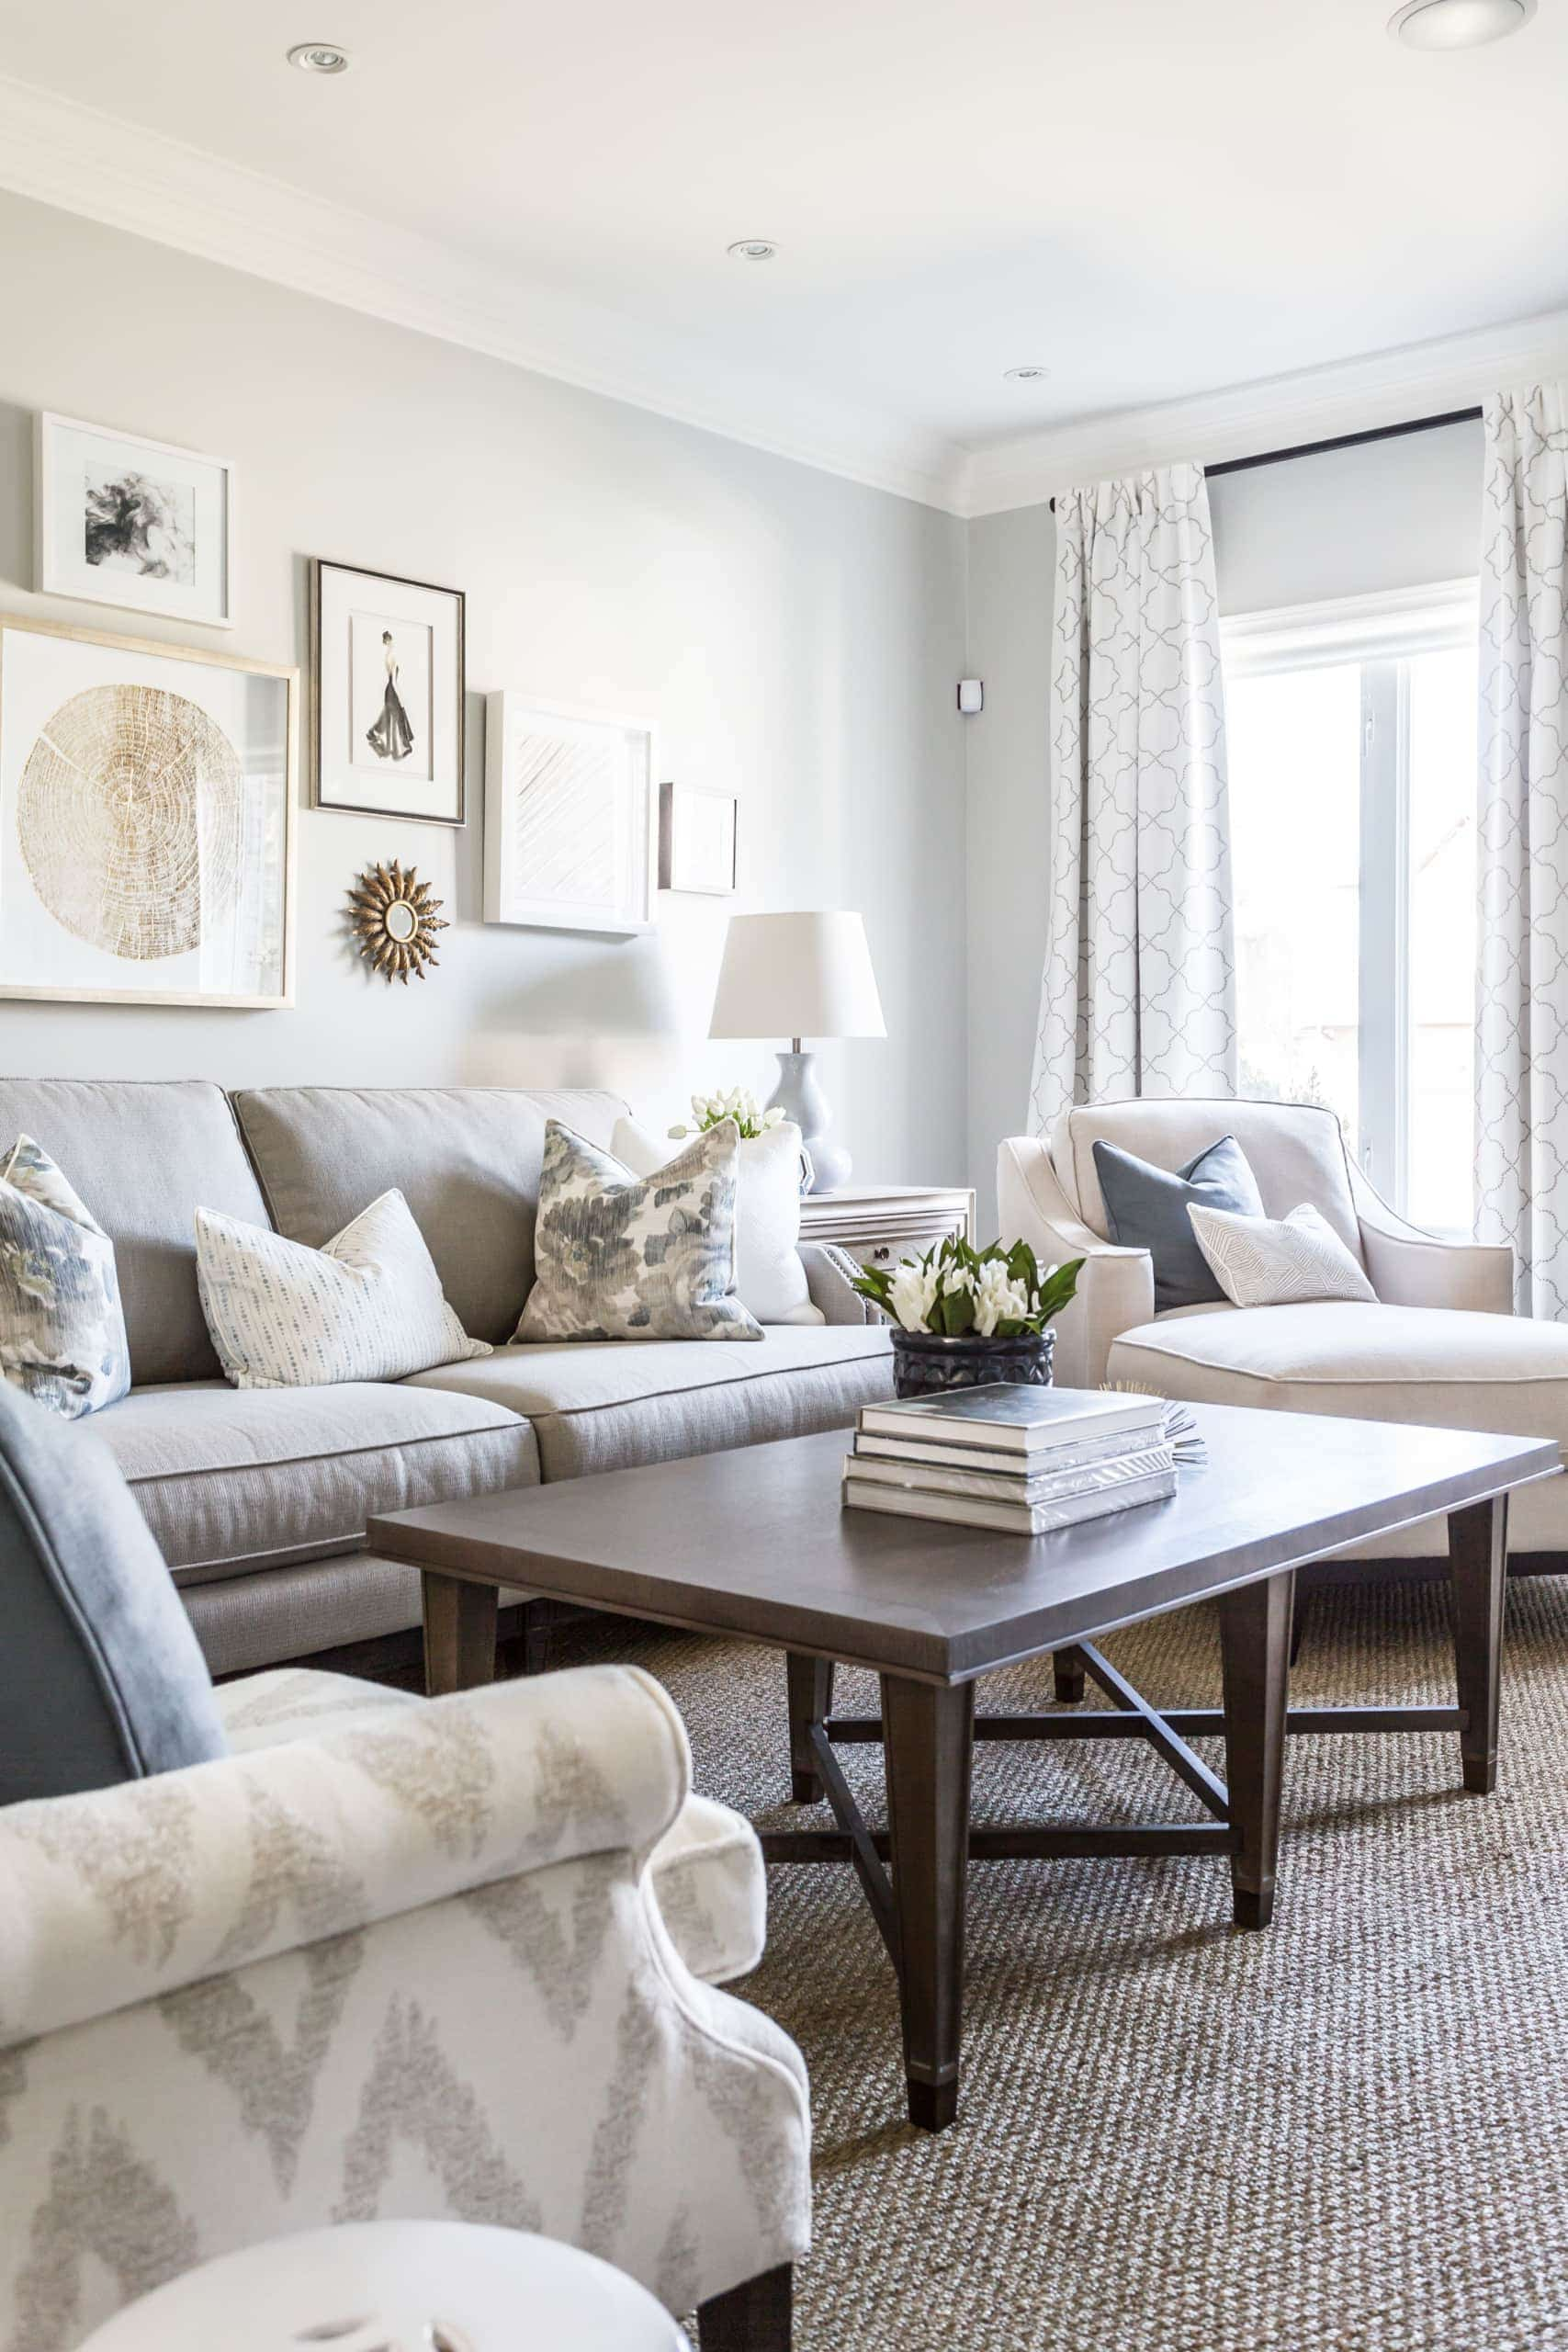 Bright, white living room with various pictures on the wall